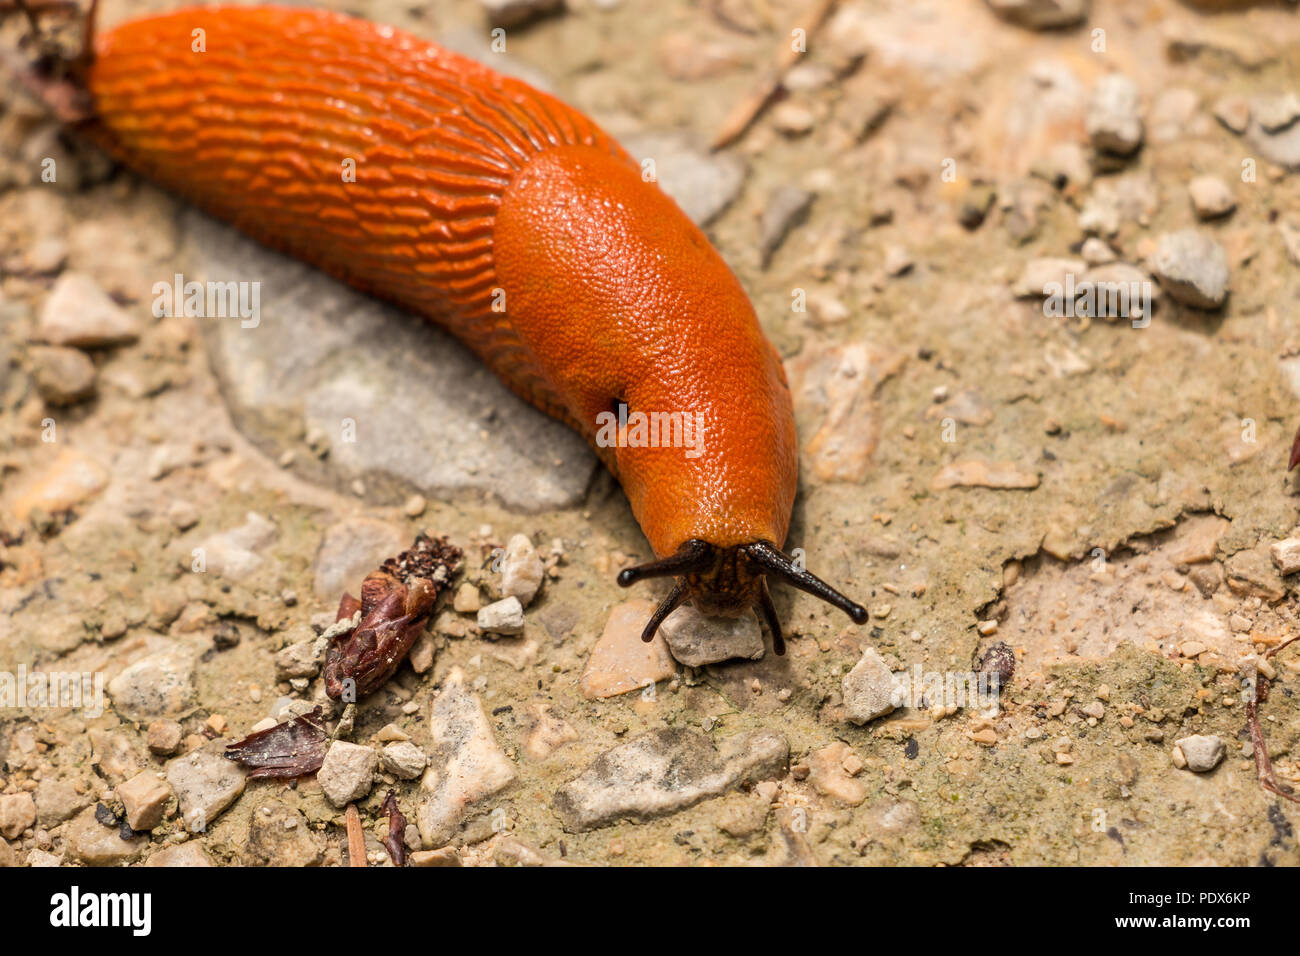 Big orange snail on stony ground in the forest Stock Photo